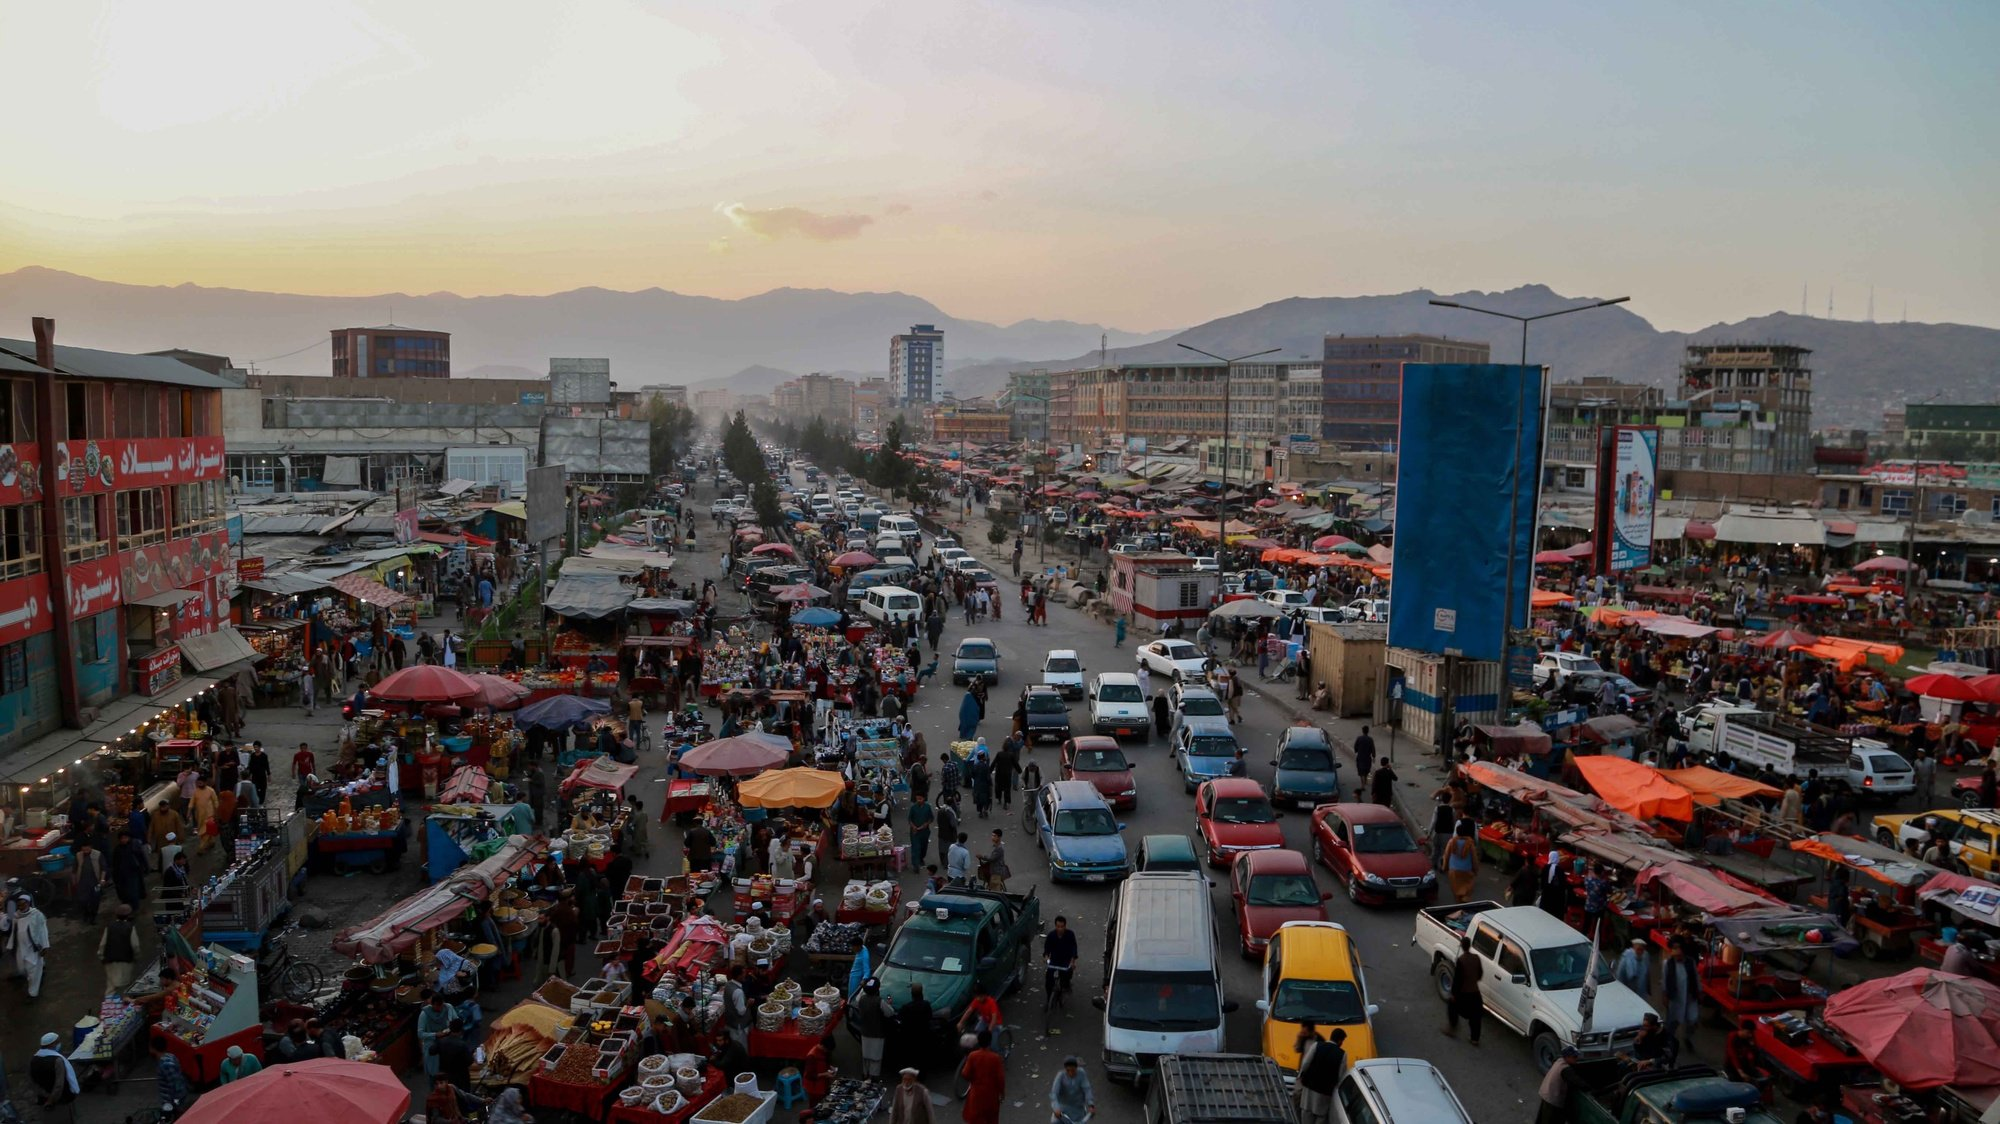 epa09492682 A view of a traffic jam in Kabul, Afghanistan, 28 September 2021. Lack of international recognition remains a pressing problem for the Taliban, who are not only geopolitically isolated but are also facing a major cash crunch after international financing institutions froze most of the funds Afghanistan has long relied upon for economic stability.  EPA/STRINGER